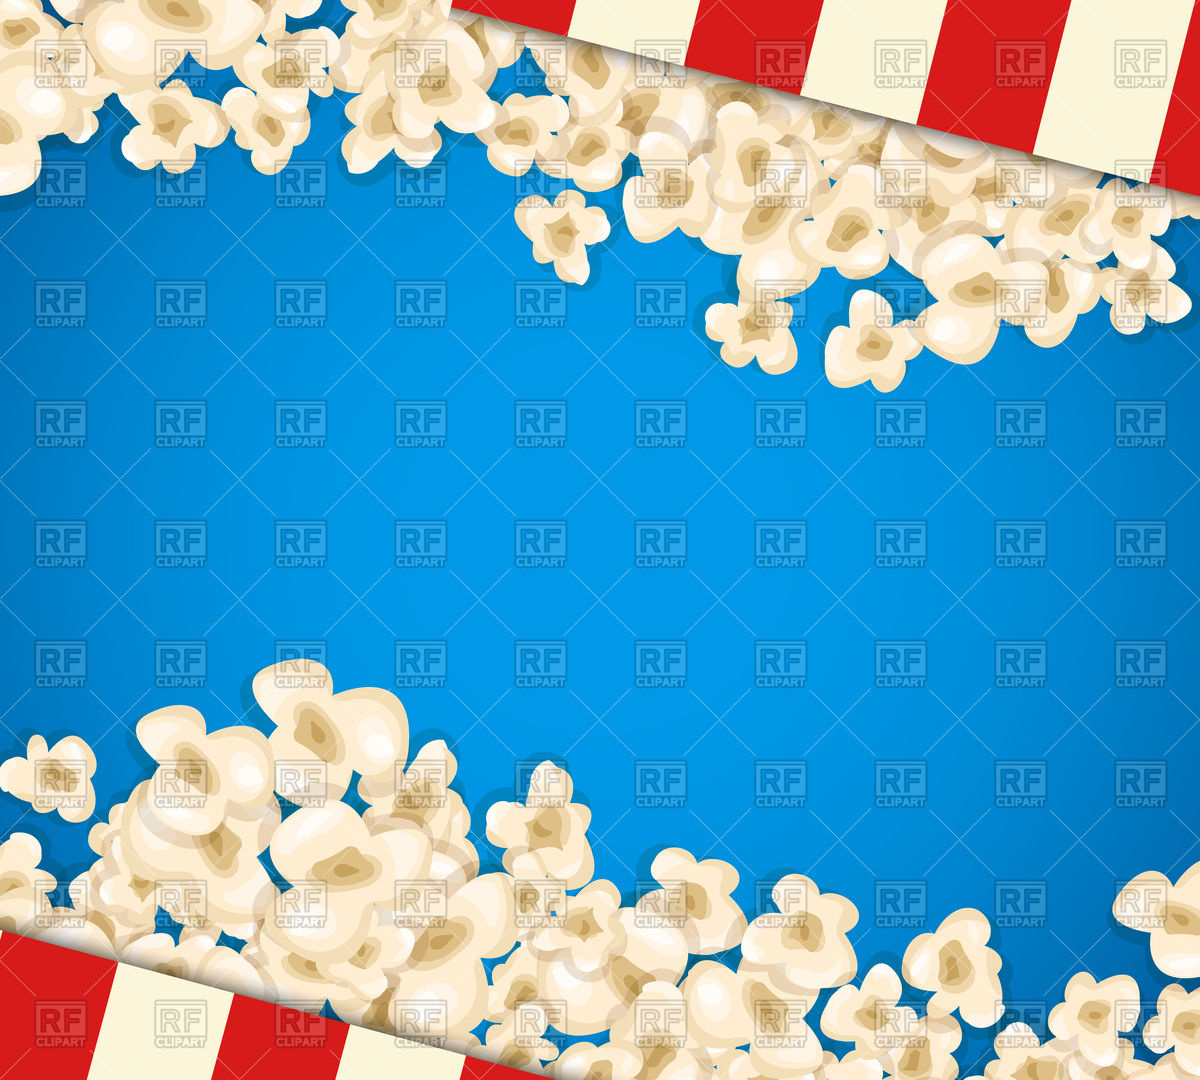 Popcorn on blue background Vector Image of Backgrounds Textures 1200x1080